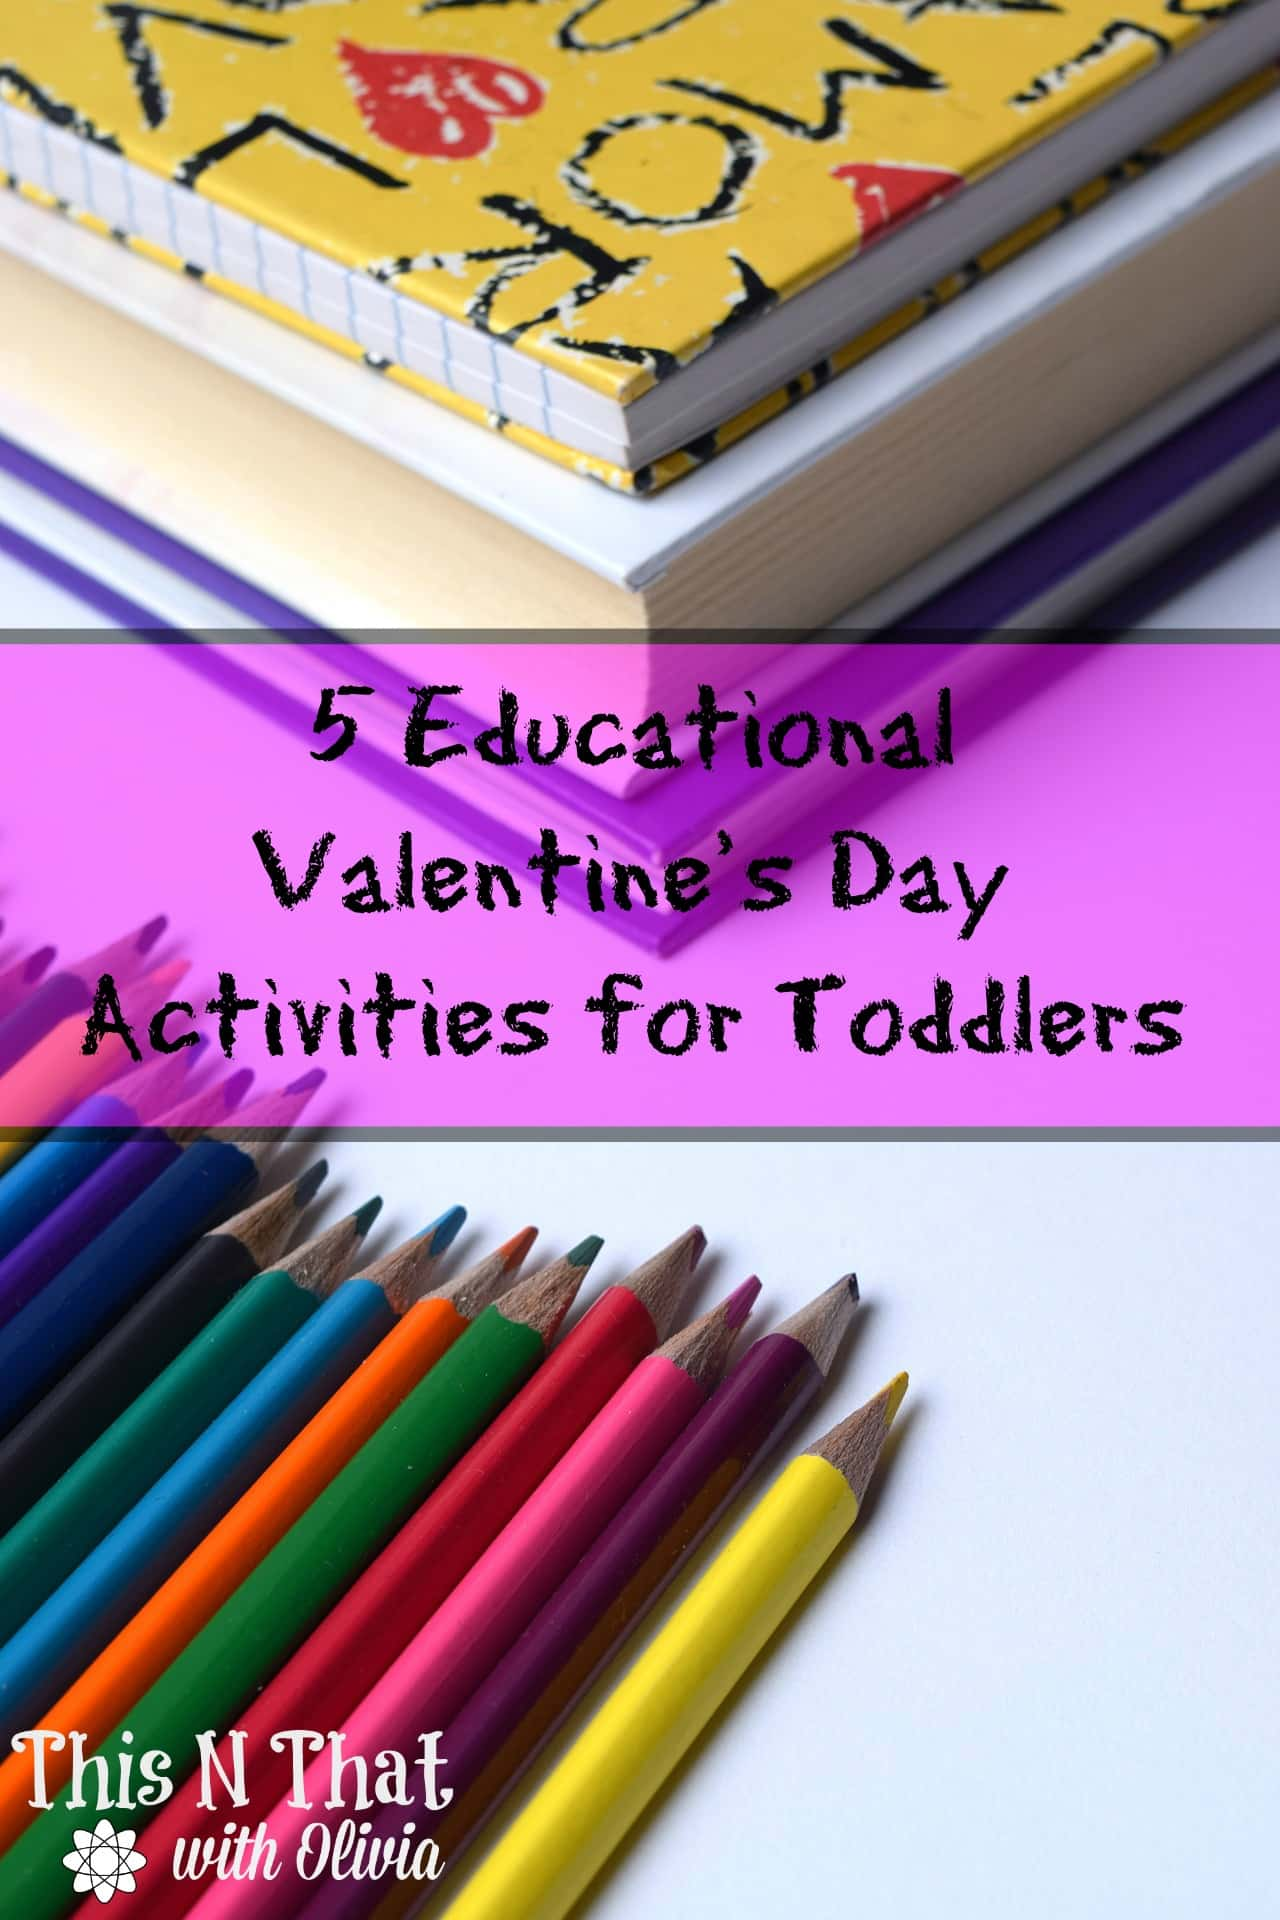 5 Educational Valentine's Day Activities for Toddlers | This N That with Olivia